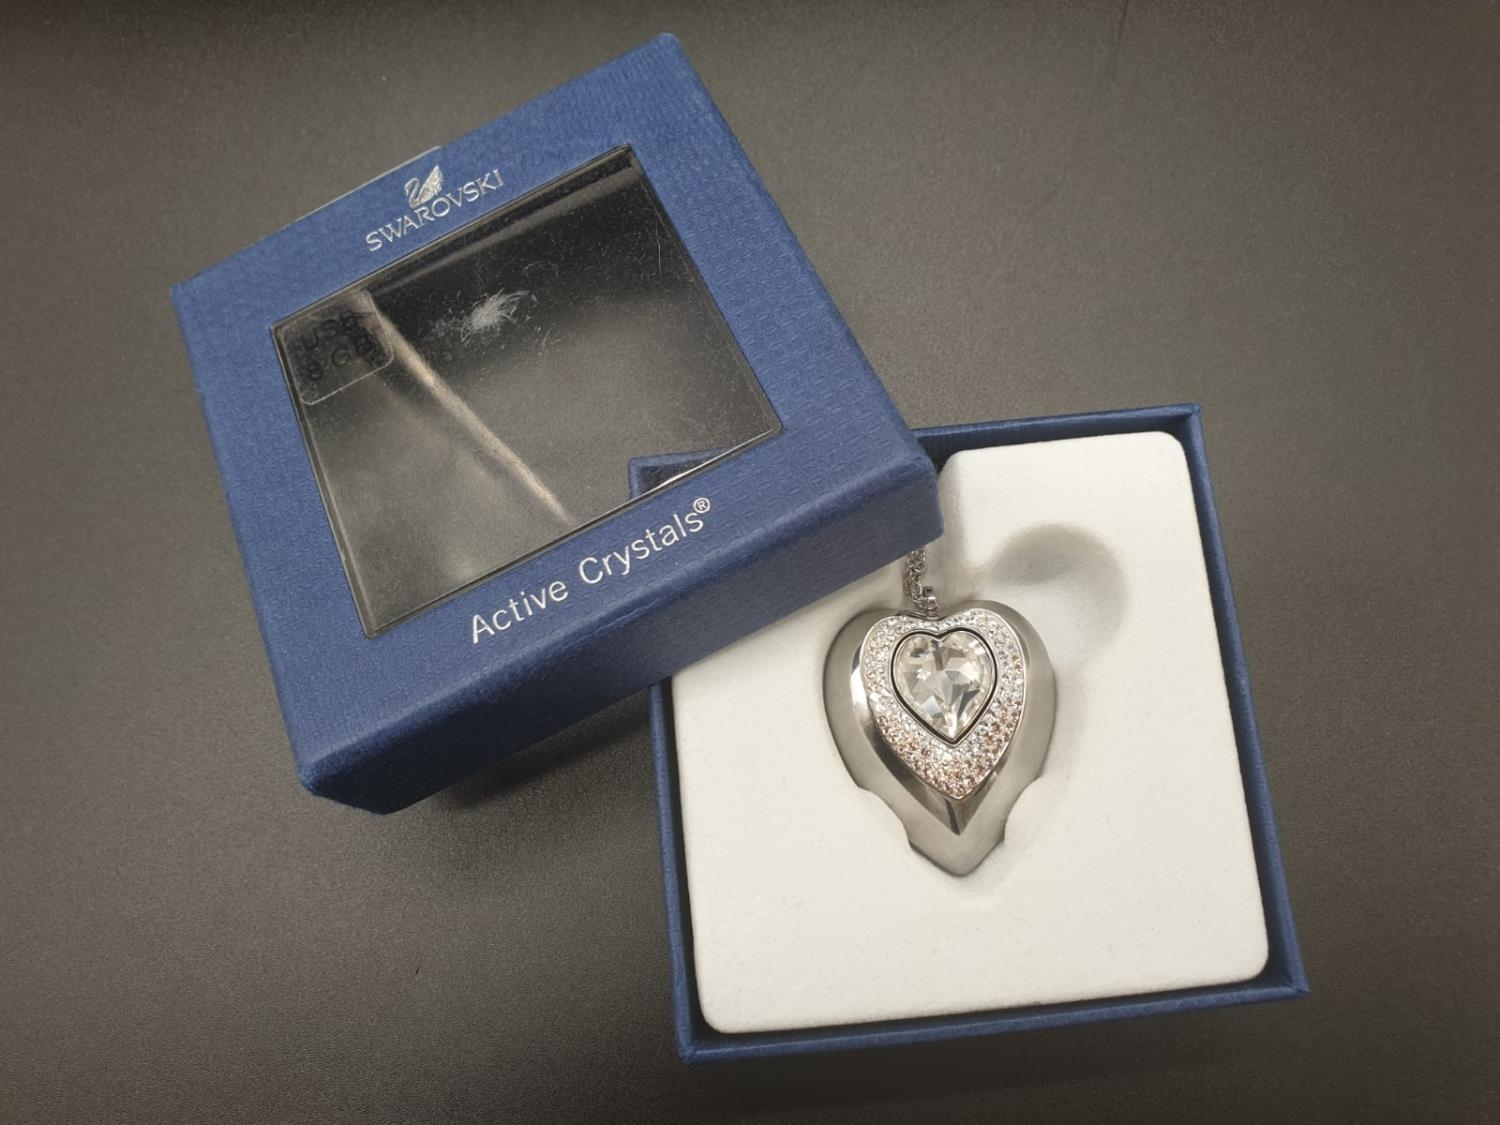 Swarovski Women's Metallic Active Crystal Heart-Shaped Pendant with built-in 8GB USB. 76cm As new, - Image 10 of 10